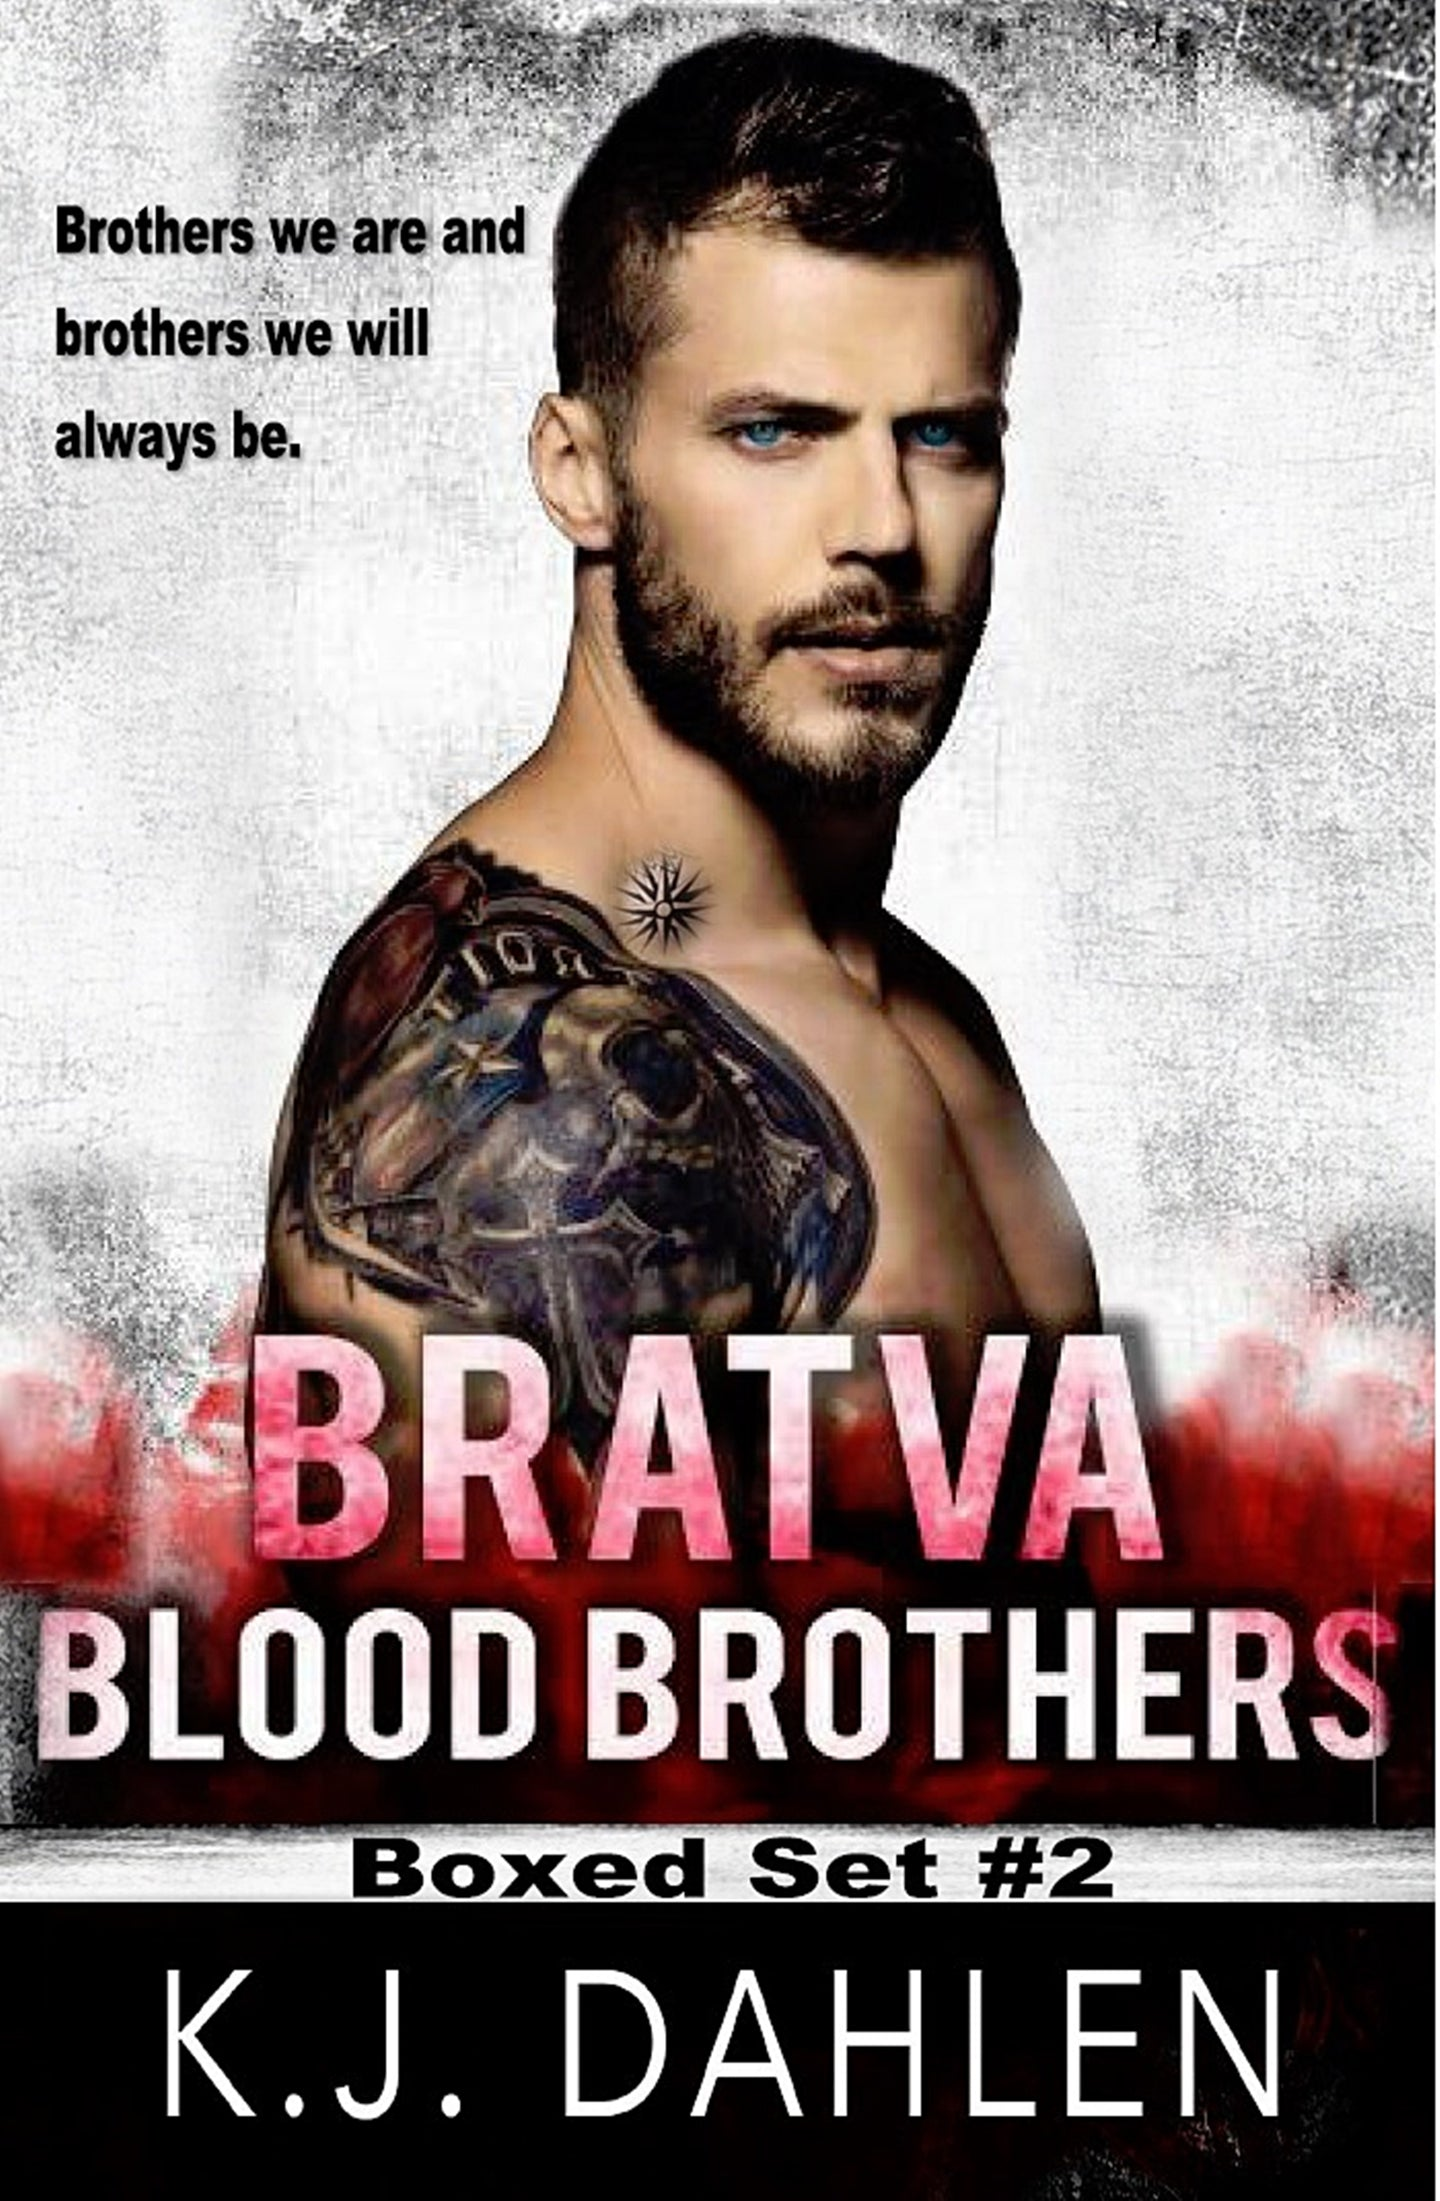 Bratva Boxed Set #2